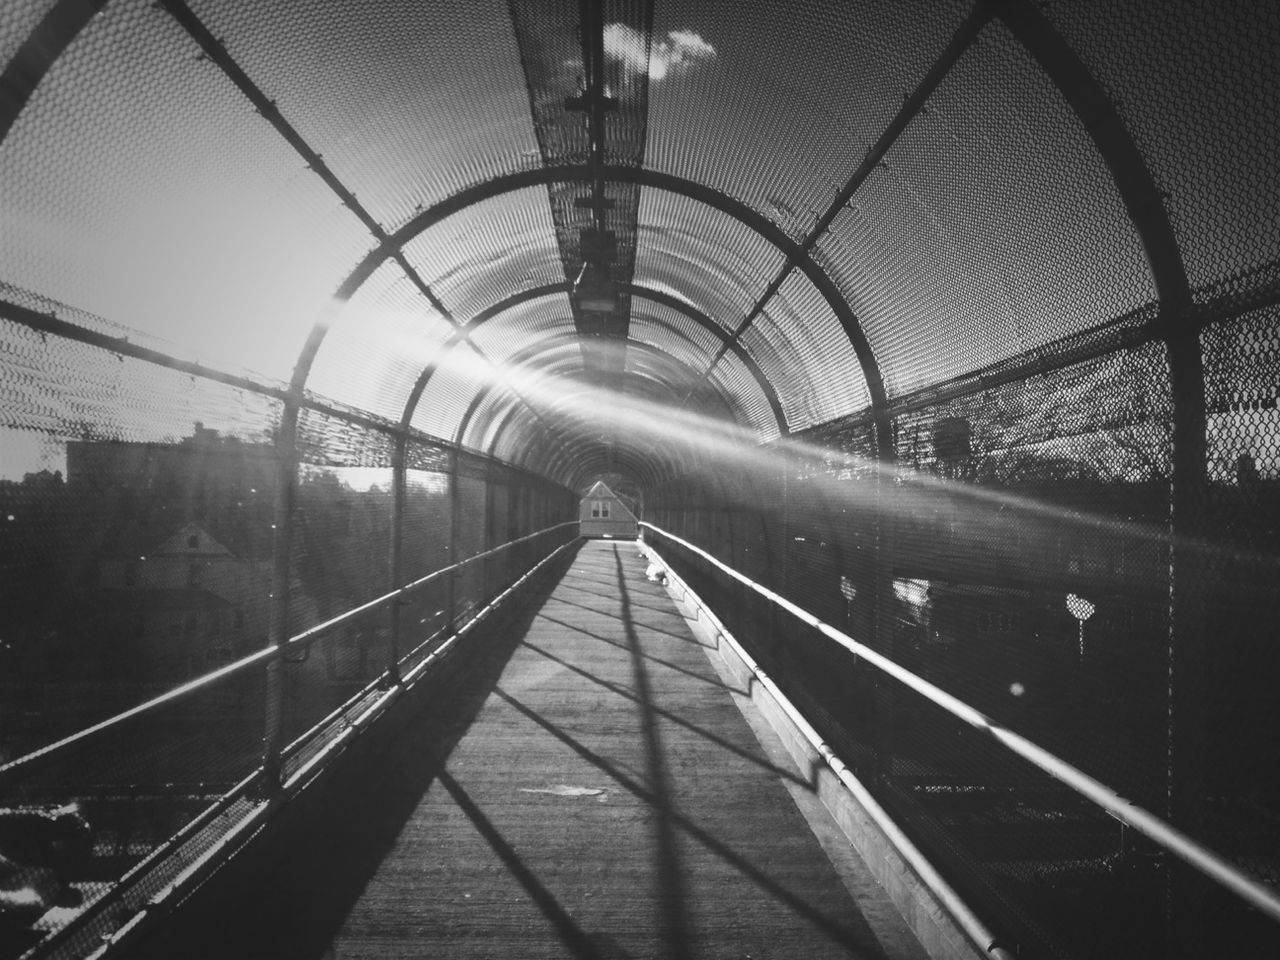 Blackandwhite Overpass Urbanism AMPt - Vanishing Point